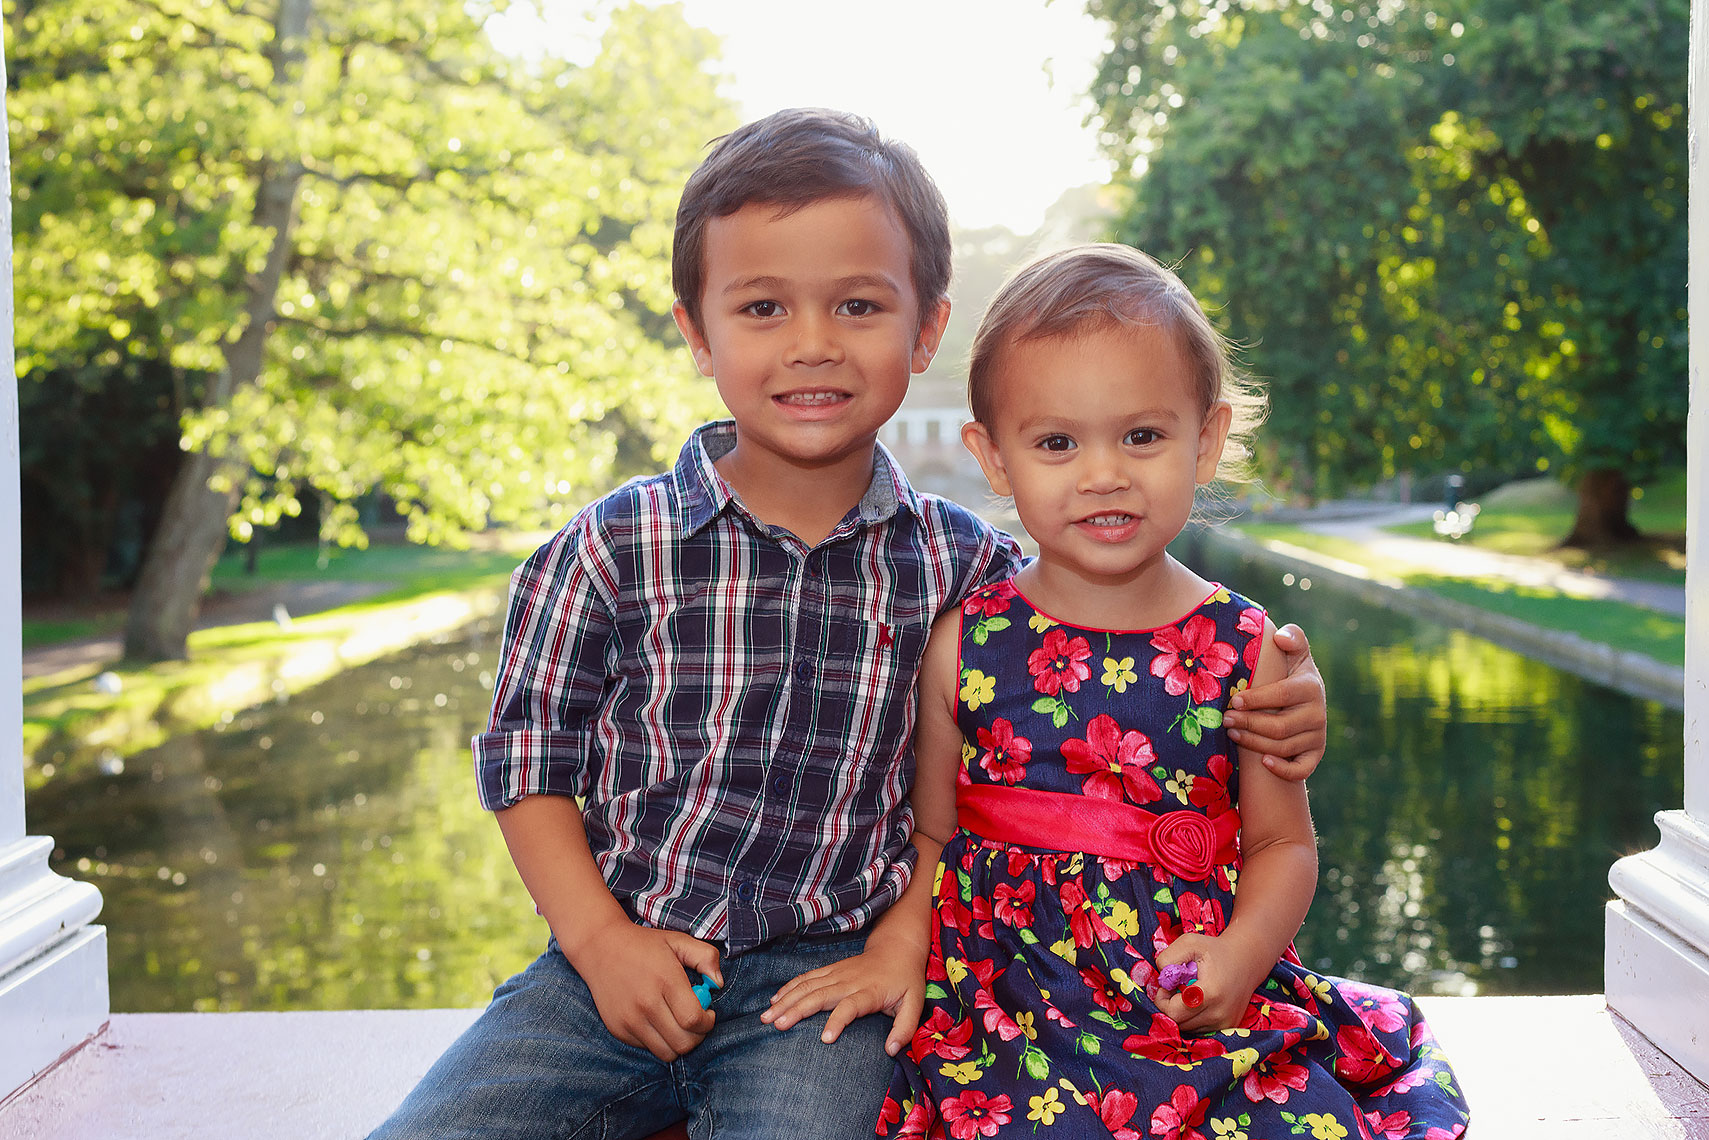 Adorable young boy in blue shirt holding younger sister in red dress sitting in front of small river